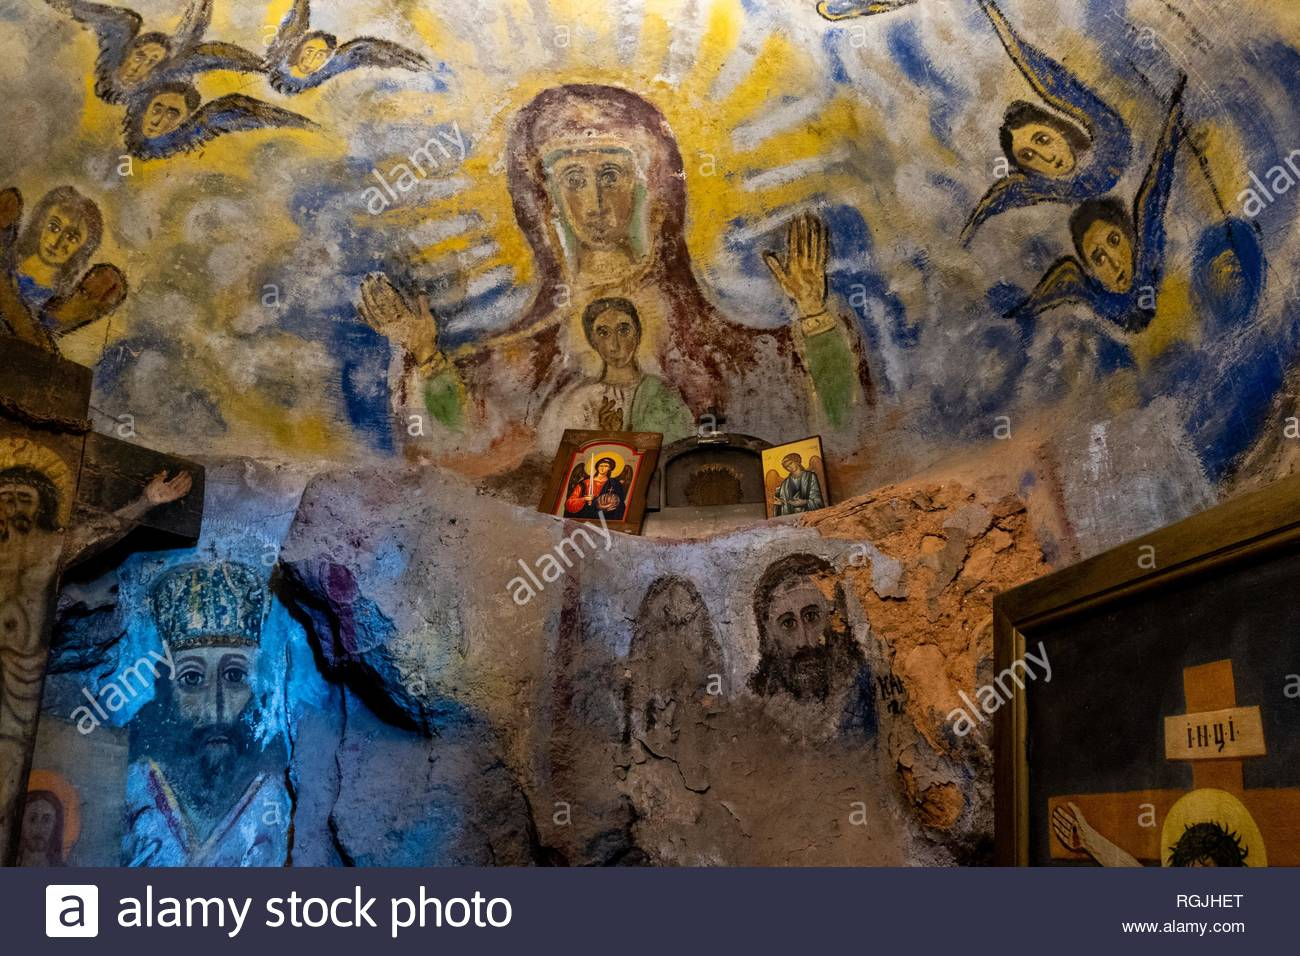 Cave in the Dajbabe Monastery cave church. The catacombs feature colourful frescoes, icons, and altars. Near Podgorica, Montenegro - Stock Image